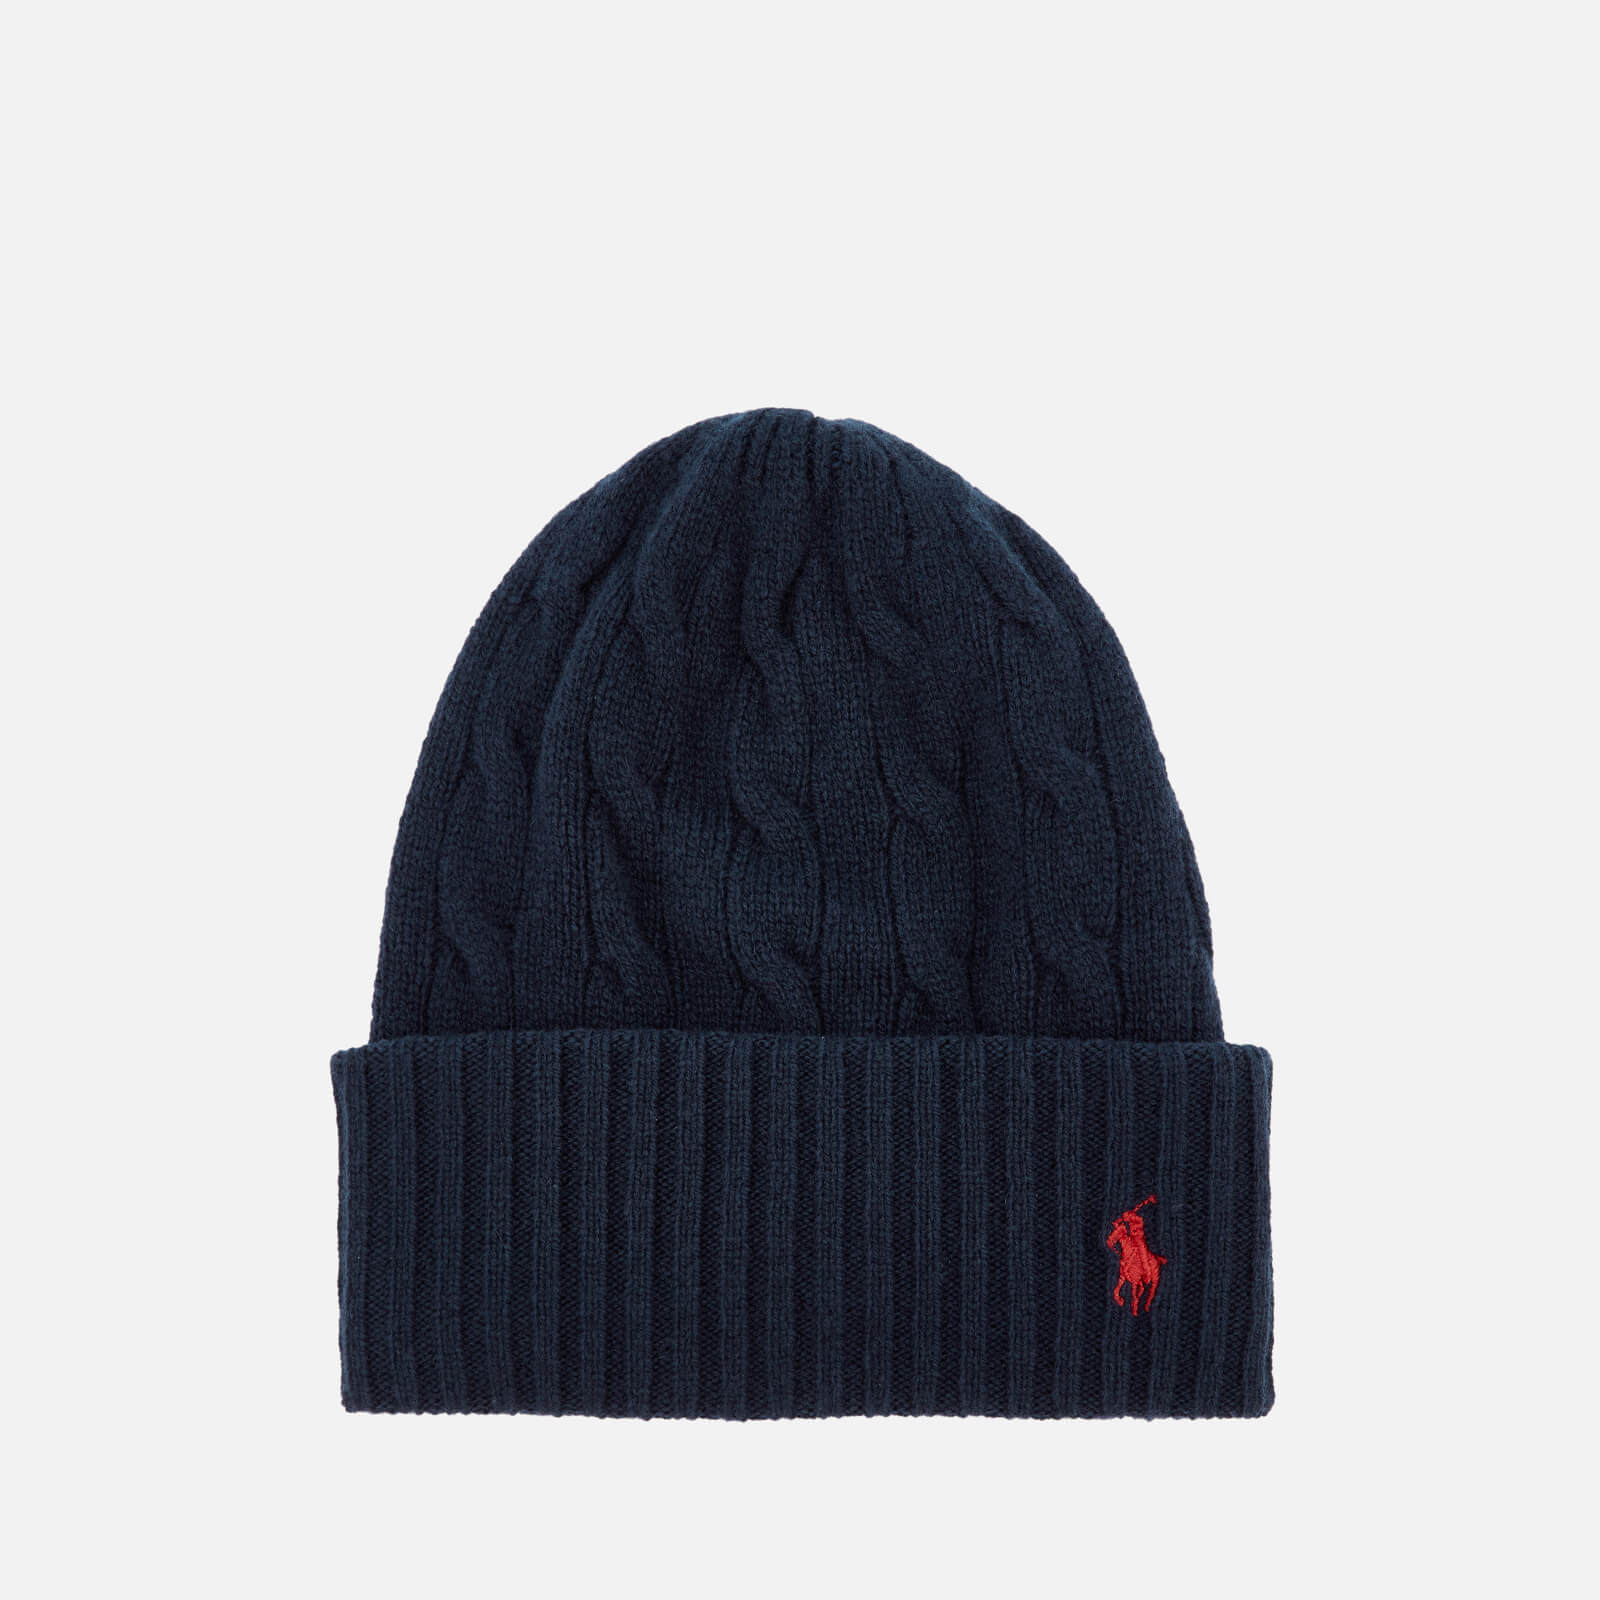 82fadd40d56eb Polo Ralph Lauren Women s Wool Hat - Hunter Navy - Free UK Delivery over £50